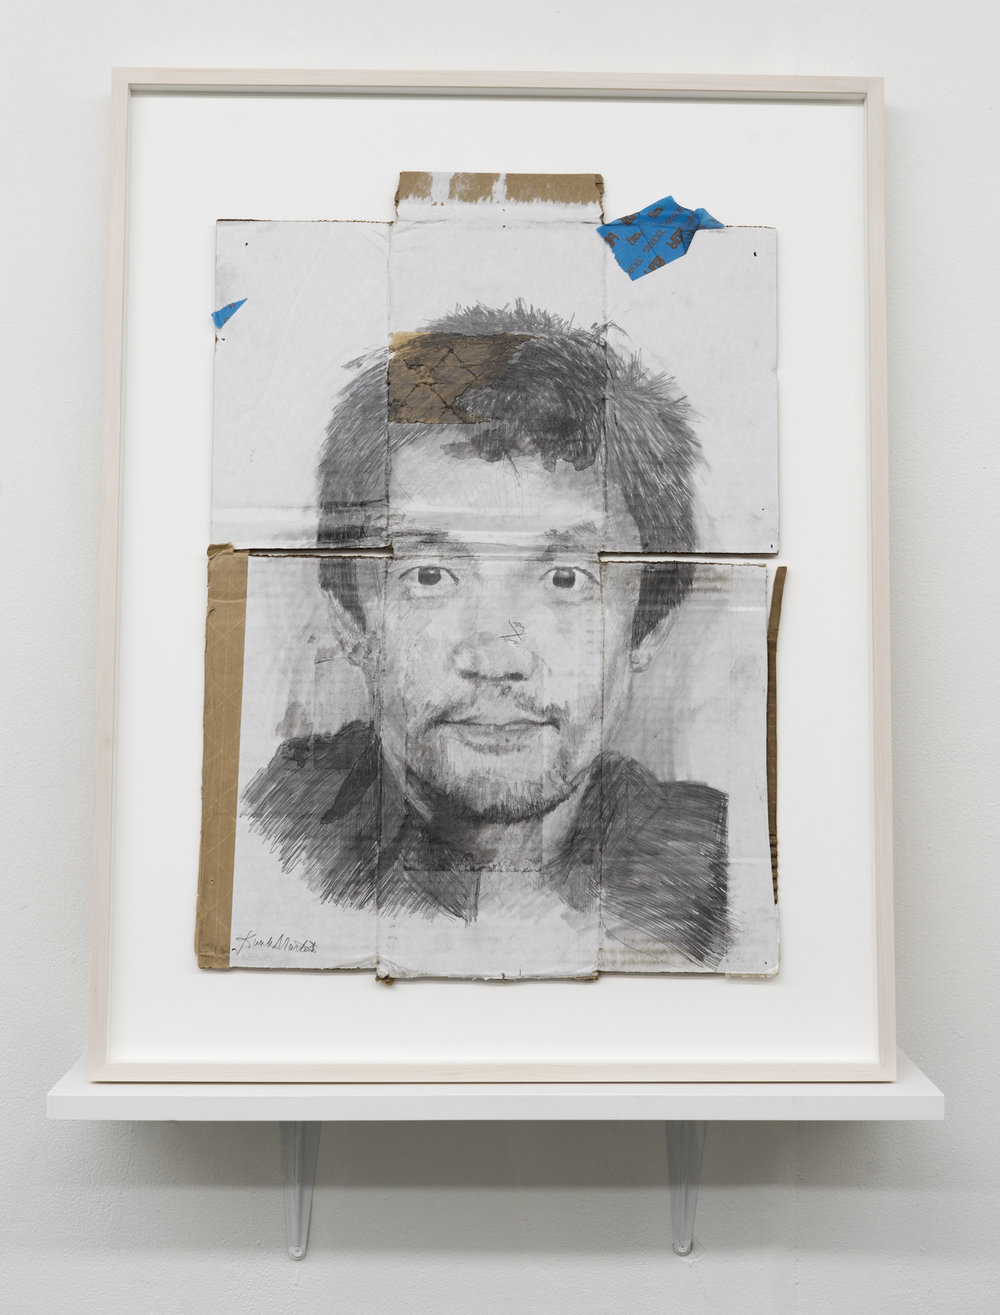 Kunle F. Martins,  Kenji, 2018,  pencil on found white cardboard box, 29 ½ × 23 inches